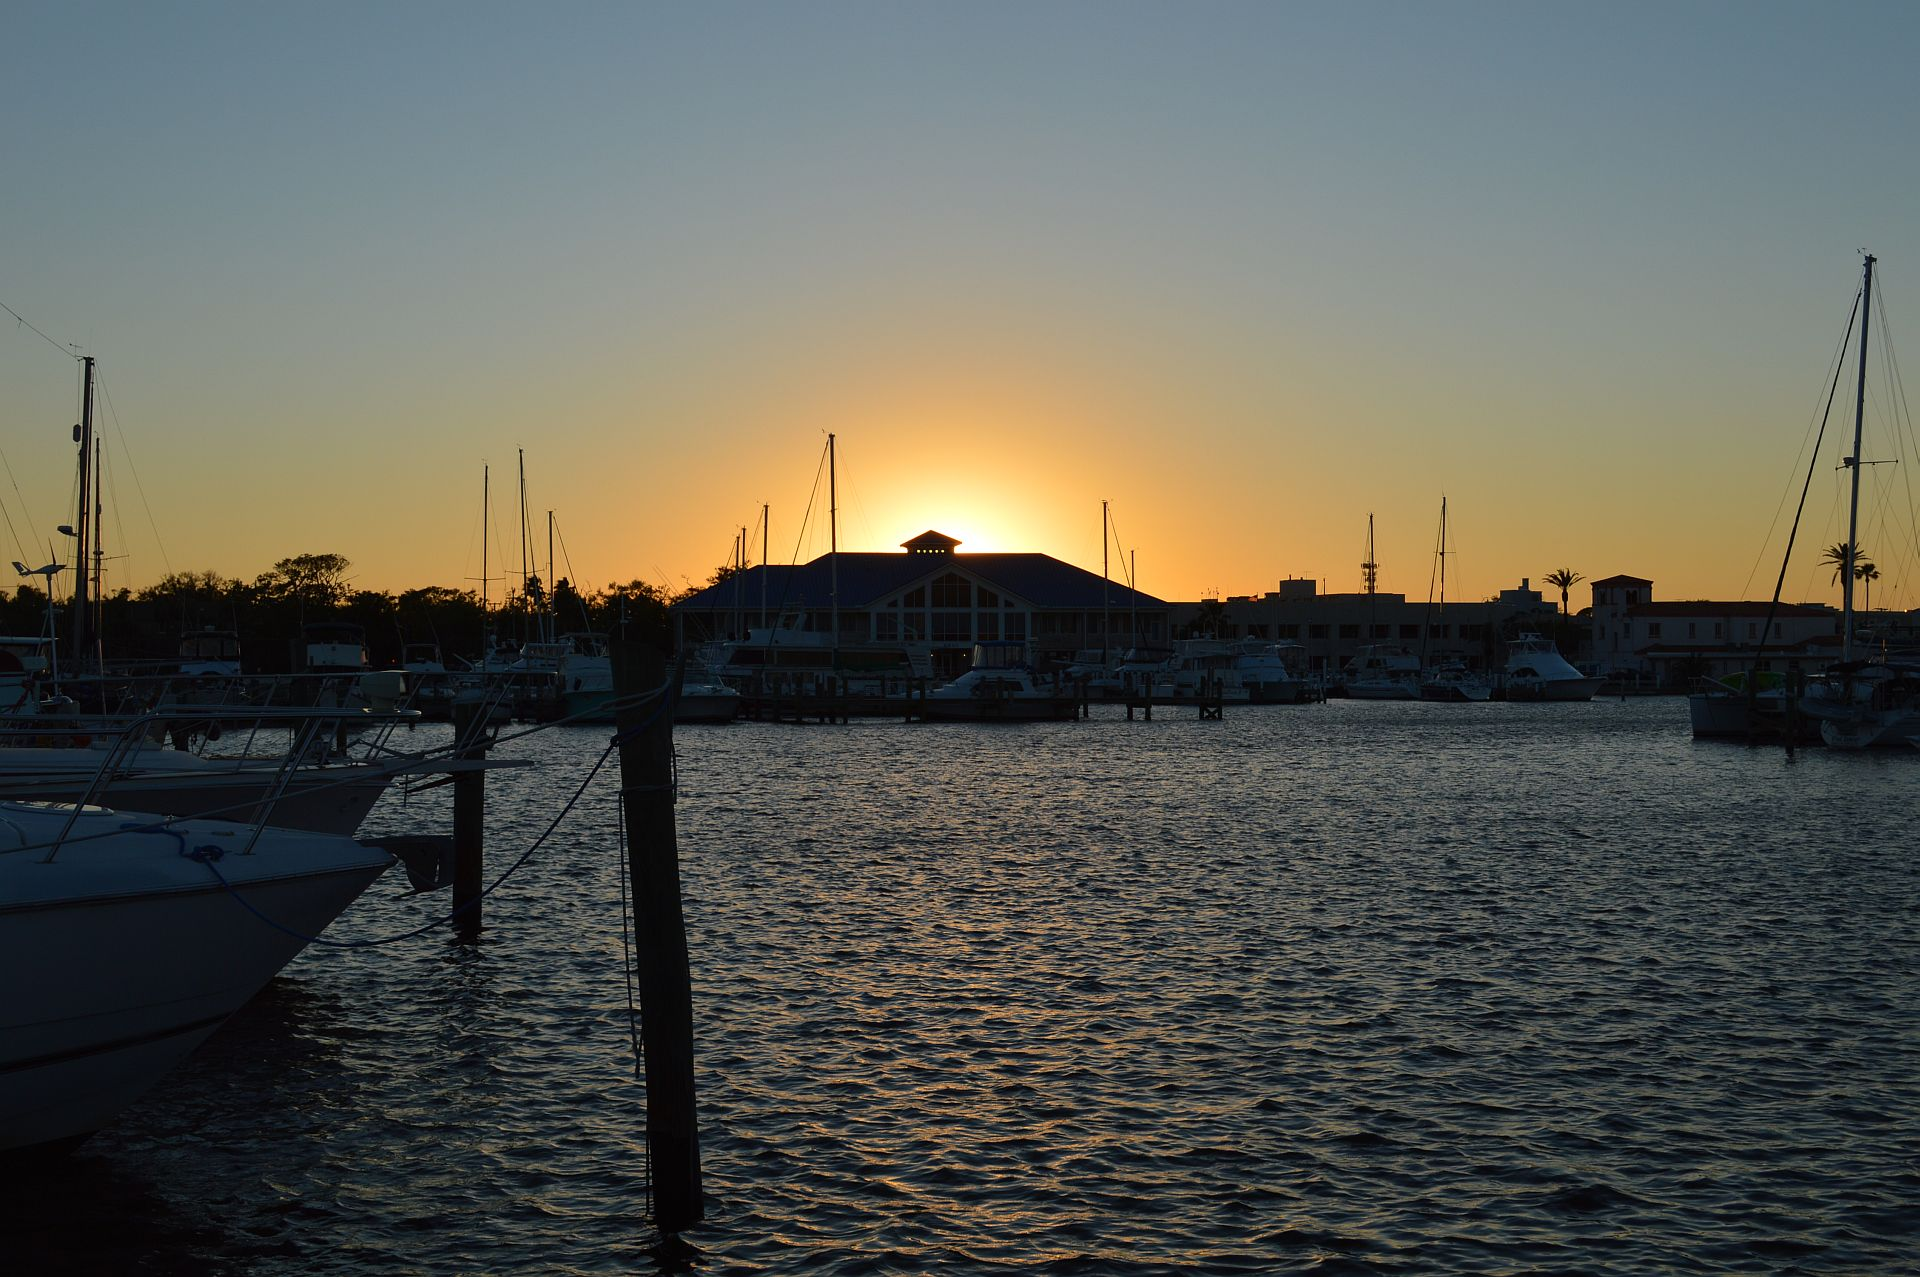 Halifax River Yacht Club at Sunset